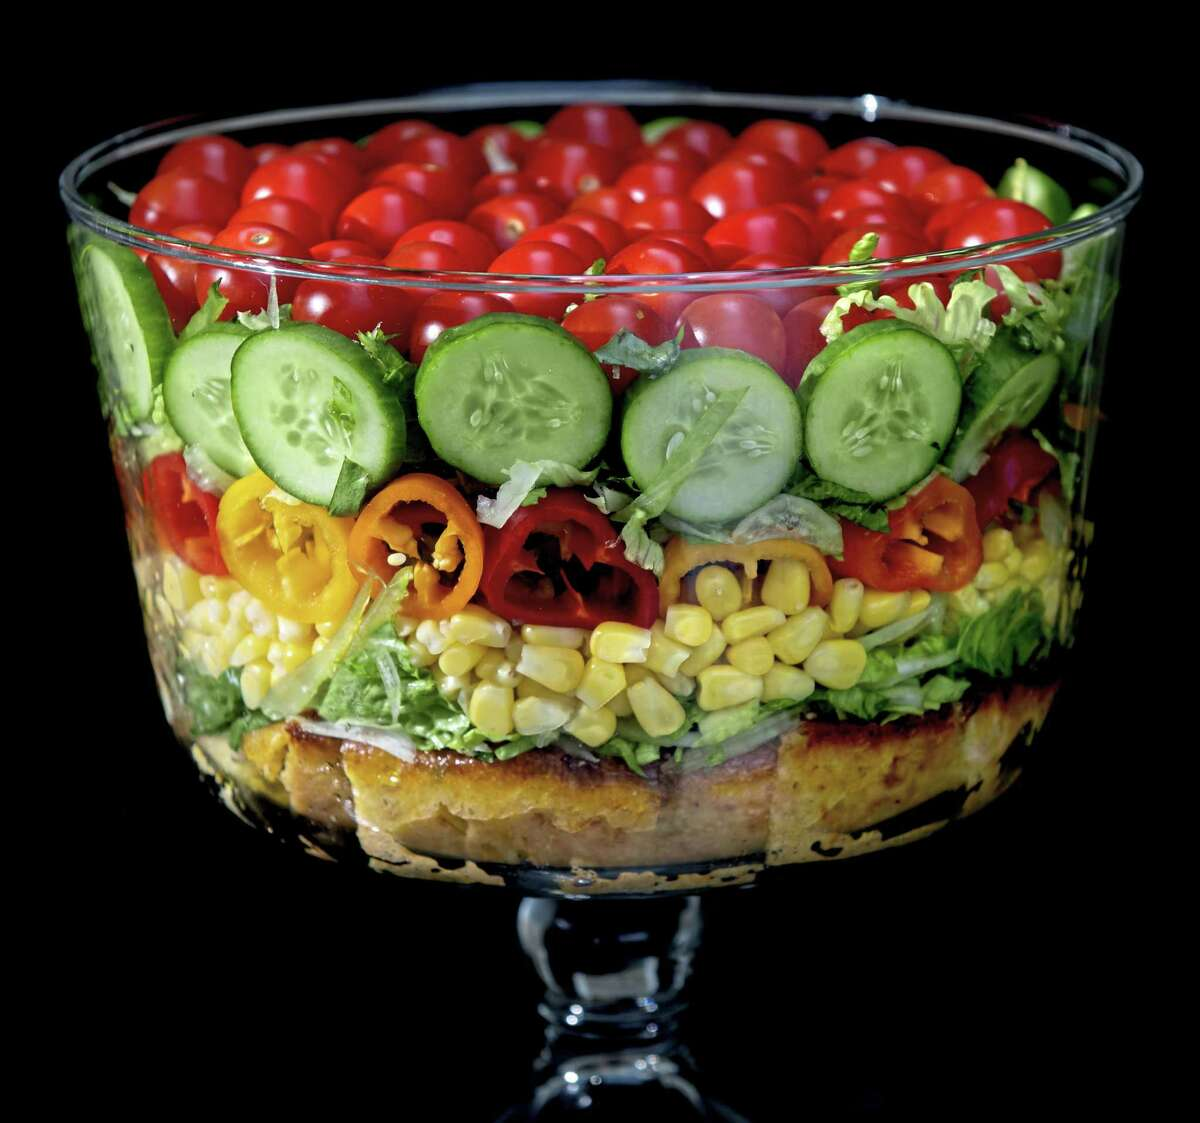 Built on a layer of savory cornbread, the summer trifle salad is made with shredded romaine lettuce, sweet corn, mini peppers, cucumbers and cherry tomatoes. Shot in Oakmont, Pennsylvania on Friday, August 21, 2020. (Steve Mellon/Pittsburgh Post-Gazette/TNS)